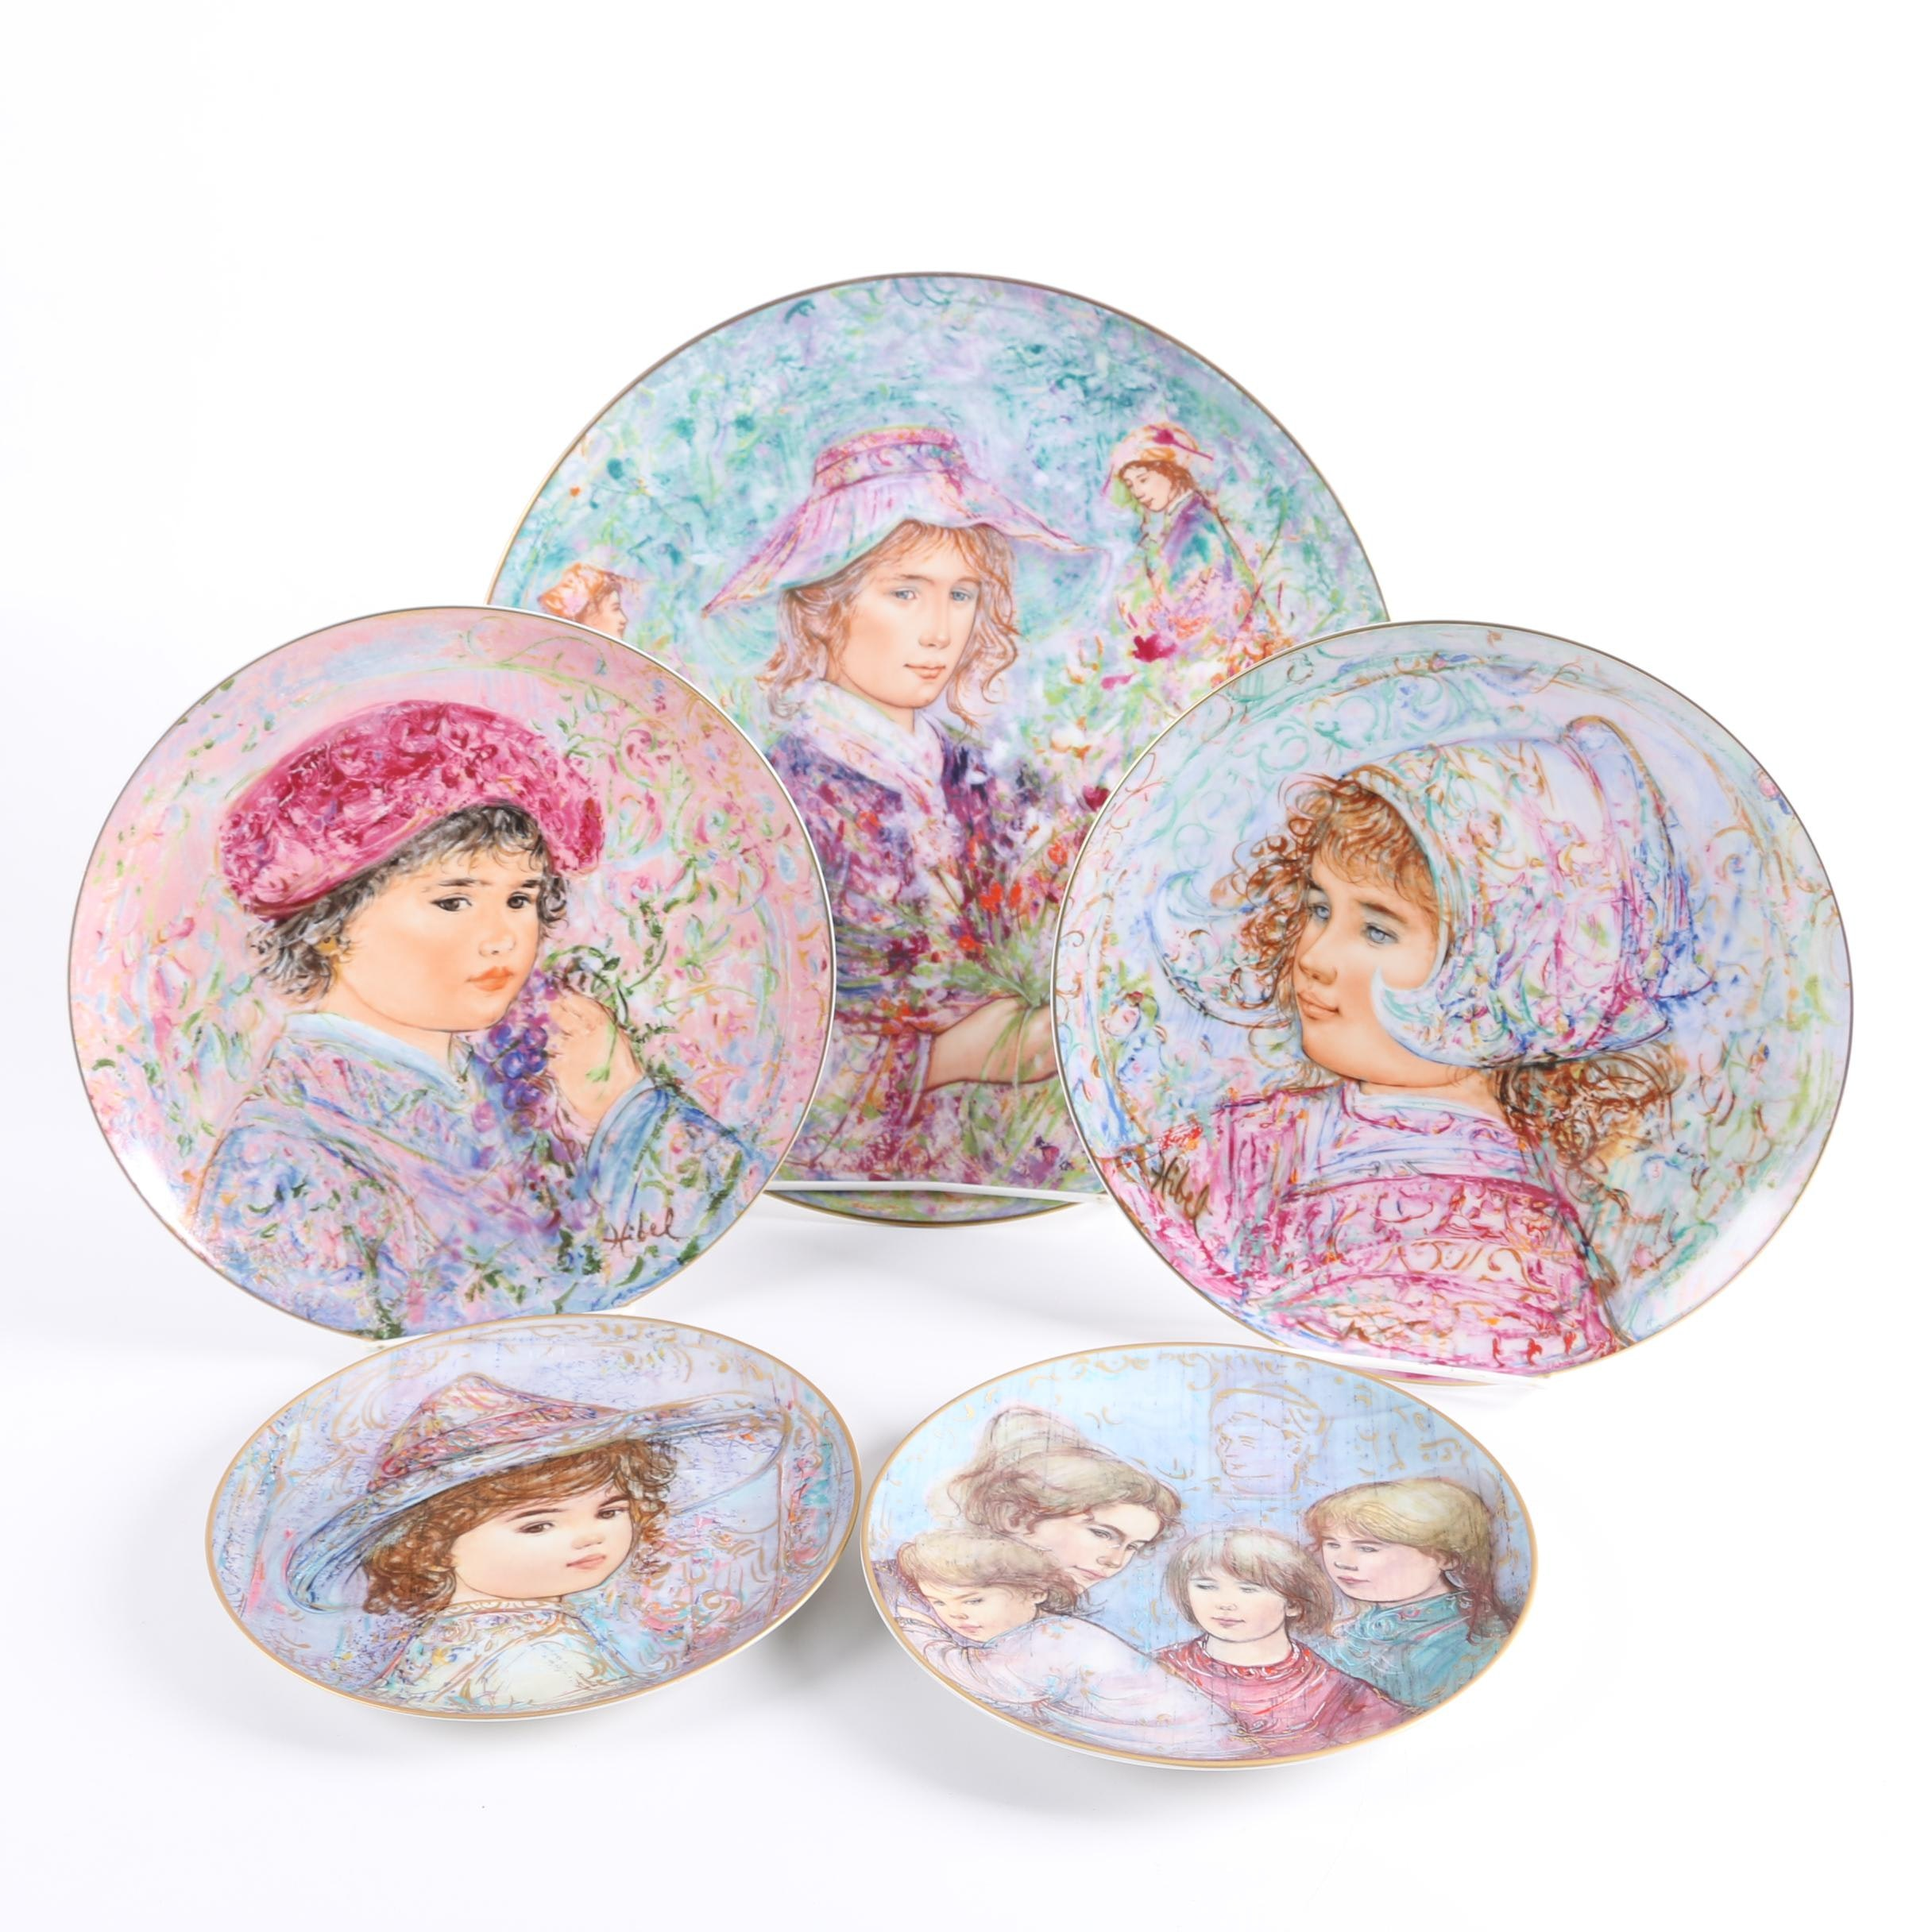 "Edna Hibel Limited Edition Commemorative Plates Including ""Nobility of Children"""